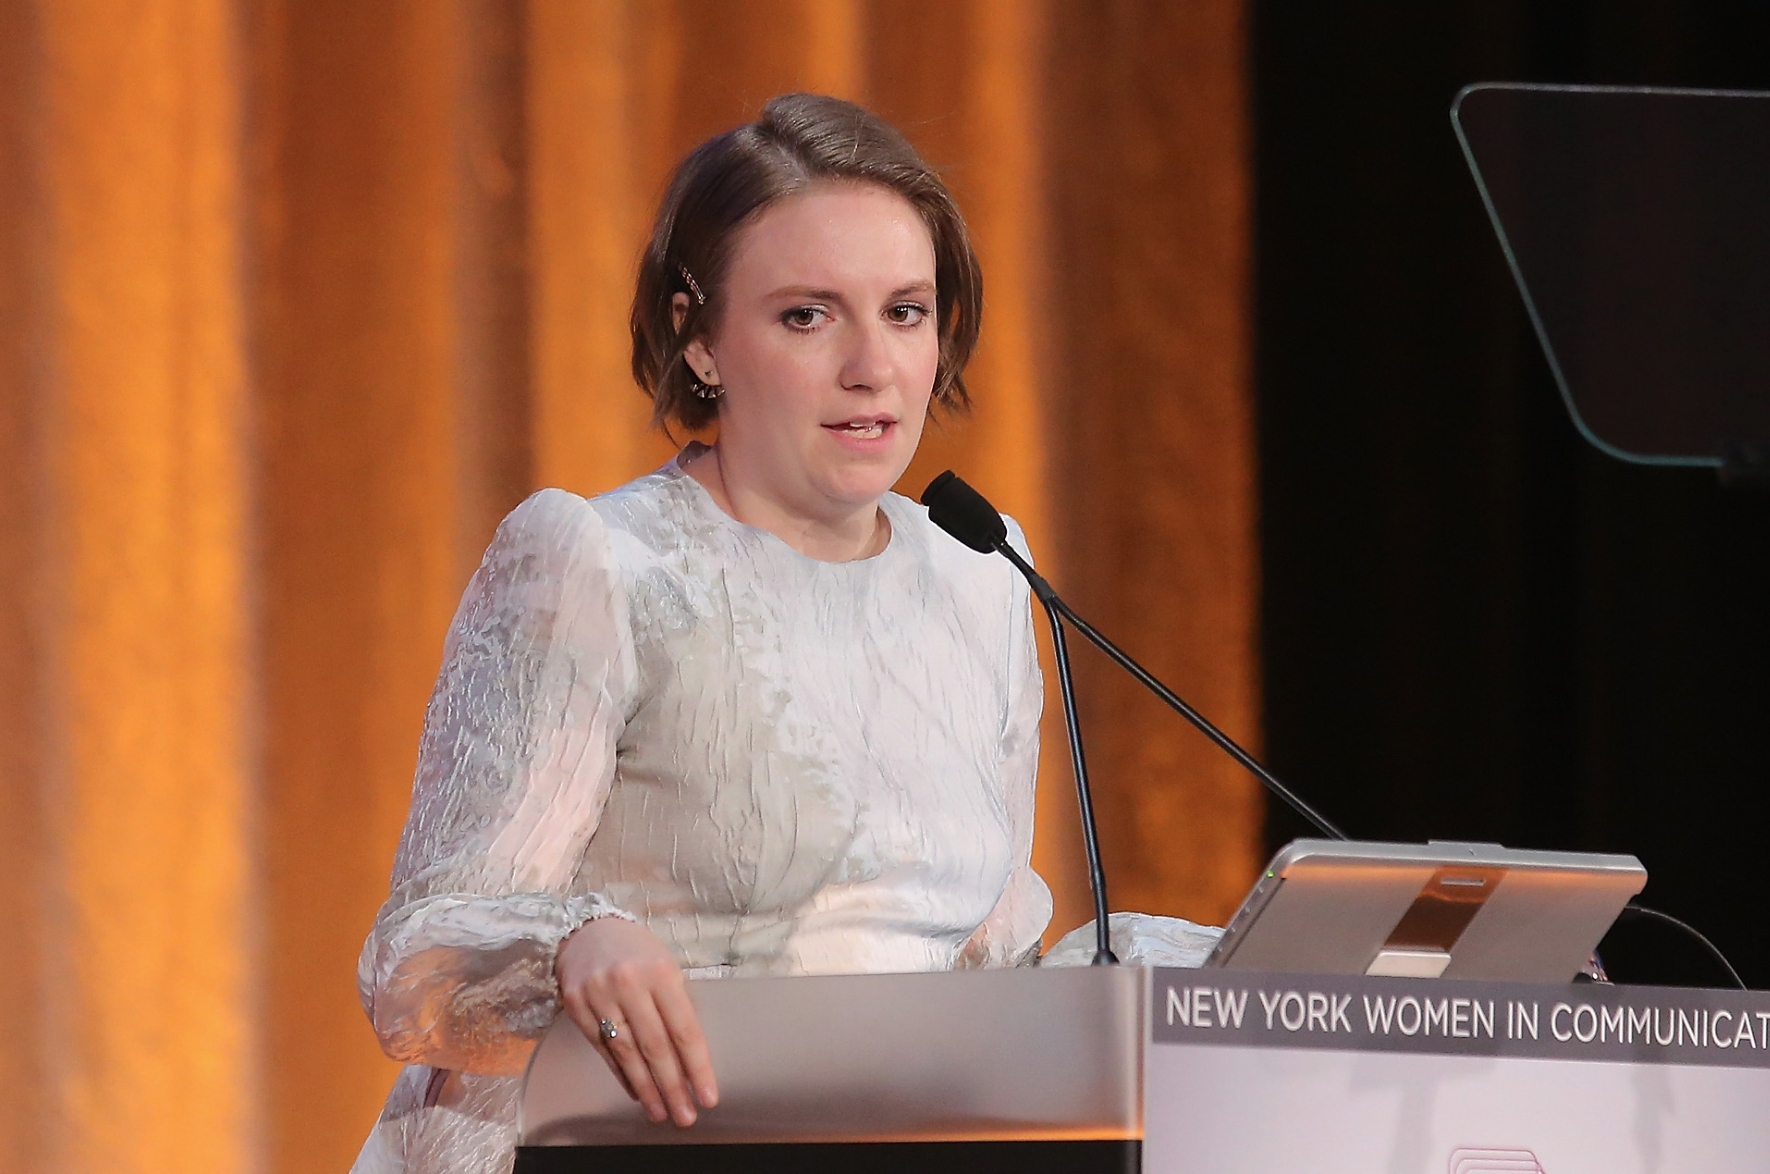 lena dunham, movies/tv, relationships, Music, celebs, pop culture